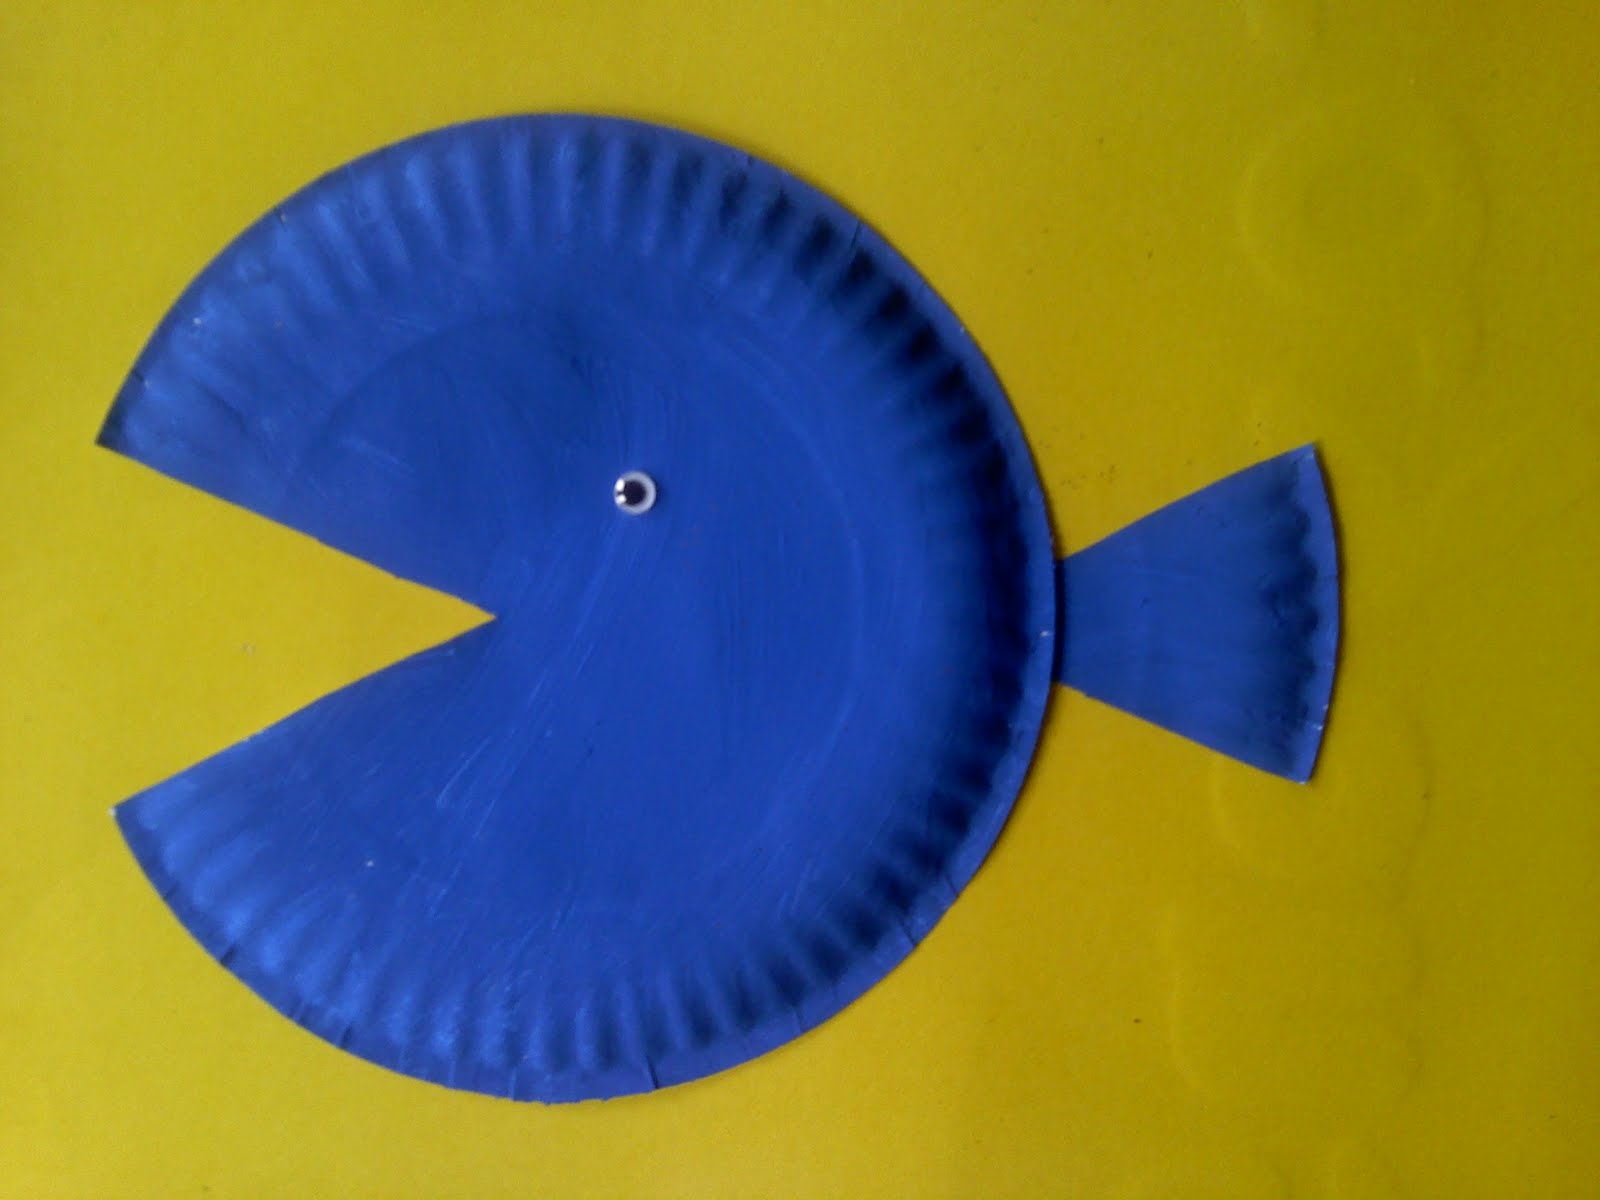 Crafts For Preschoolers: Paper Plate Fish